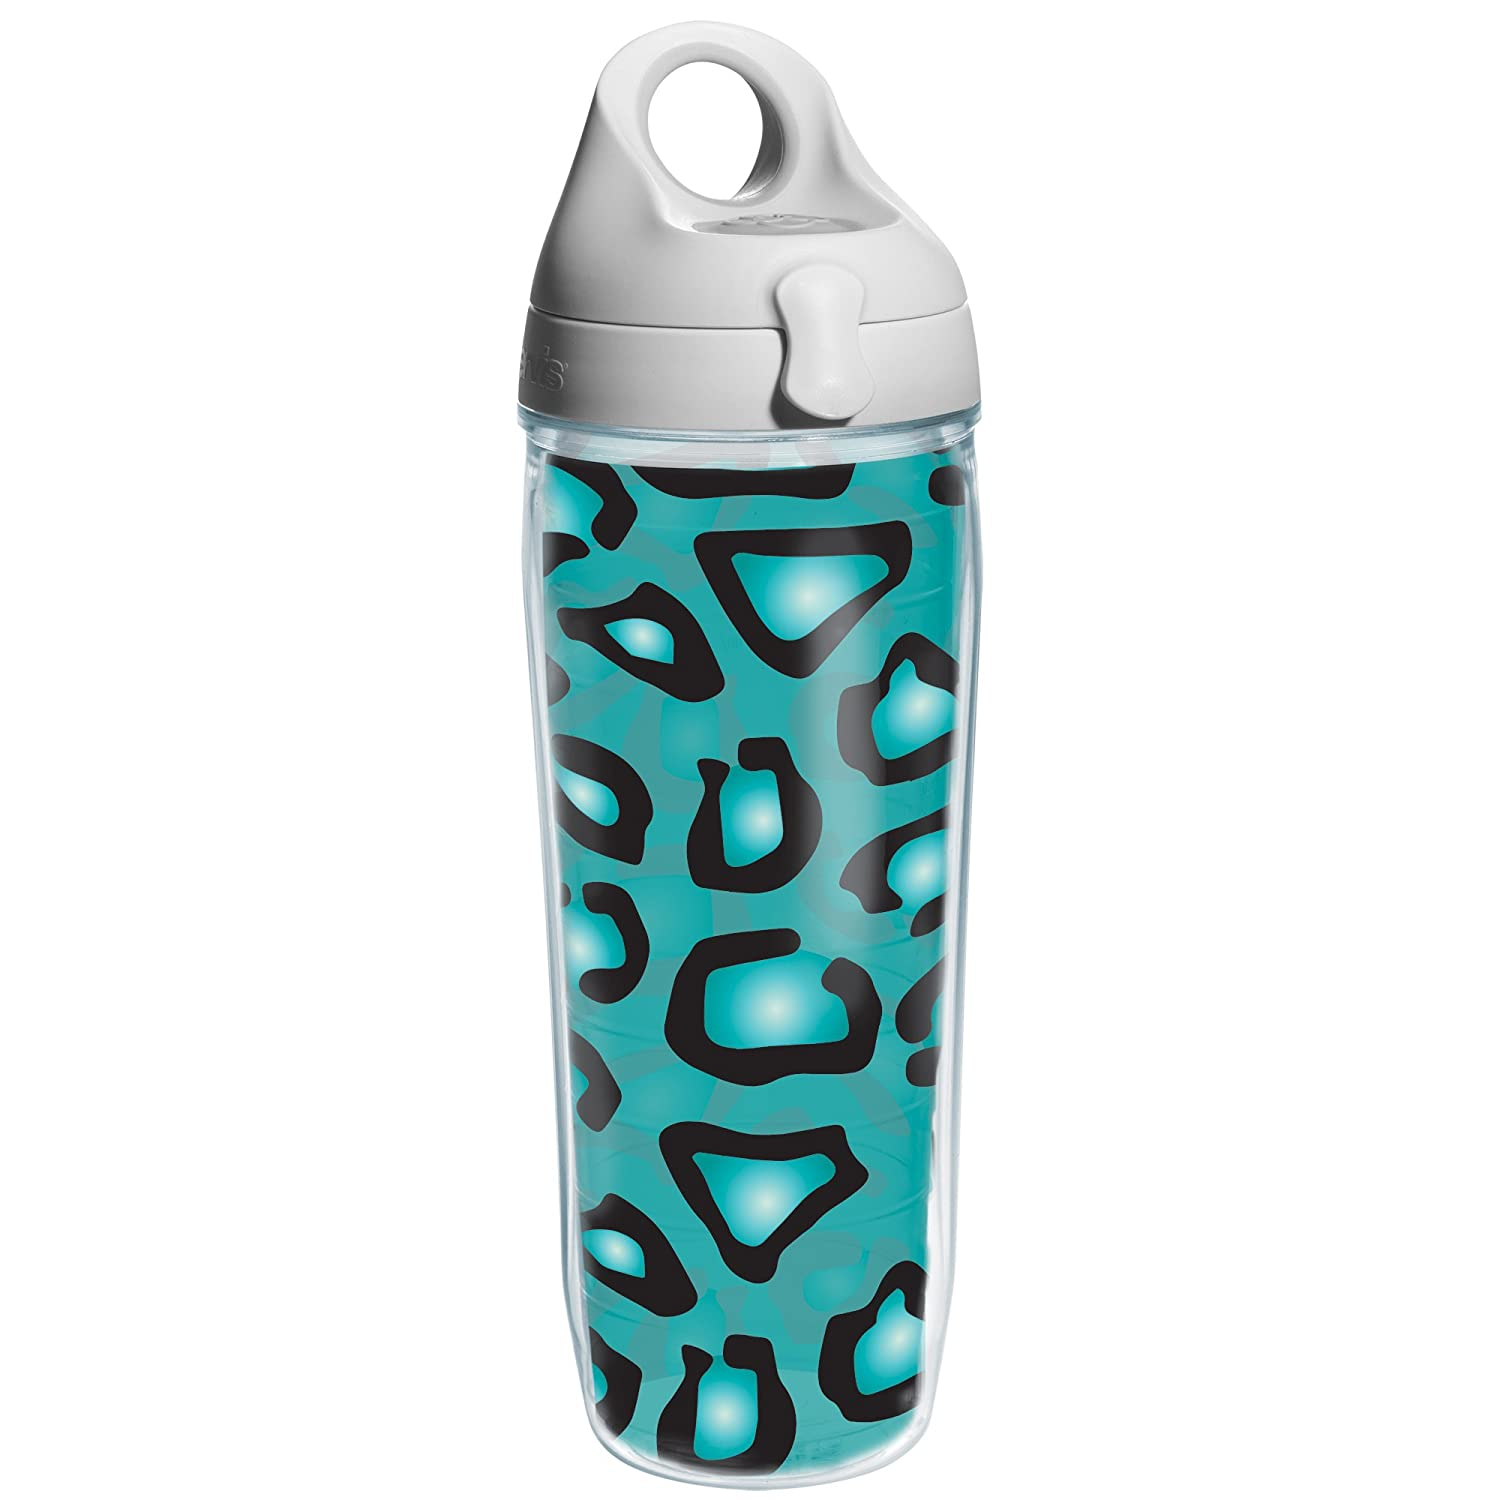 Clear 1178855 24 oz Tervis Leopard Print Teal Water Bottle